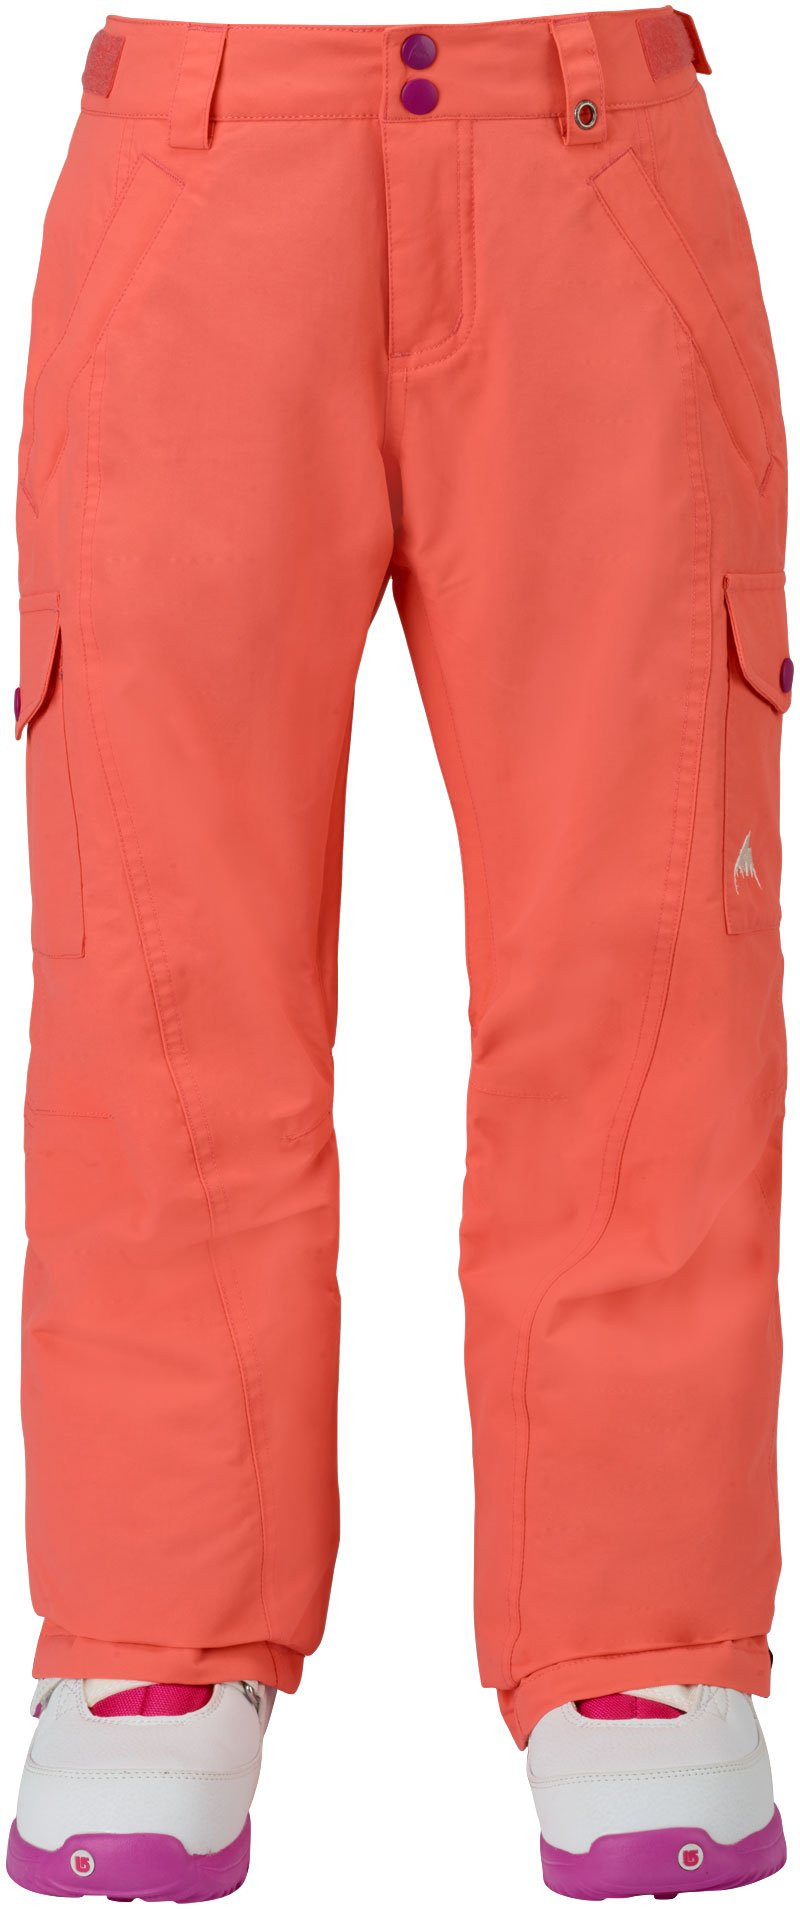 BURTON GIRLS ELITE CARGO SNOW PANT - PEACH